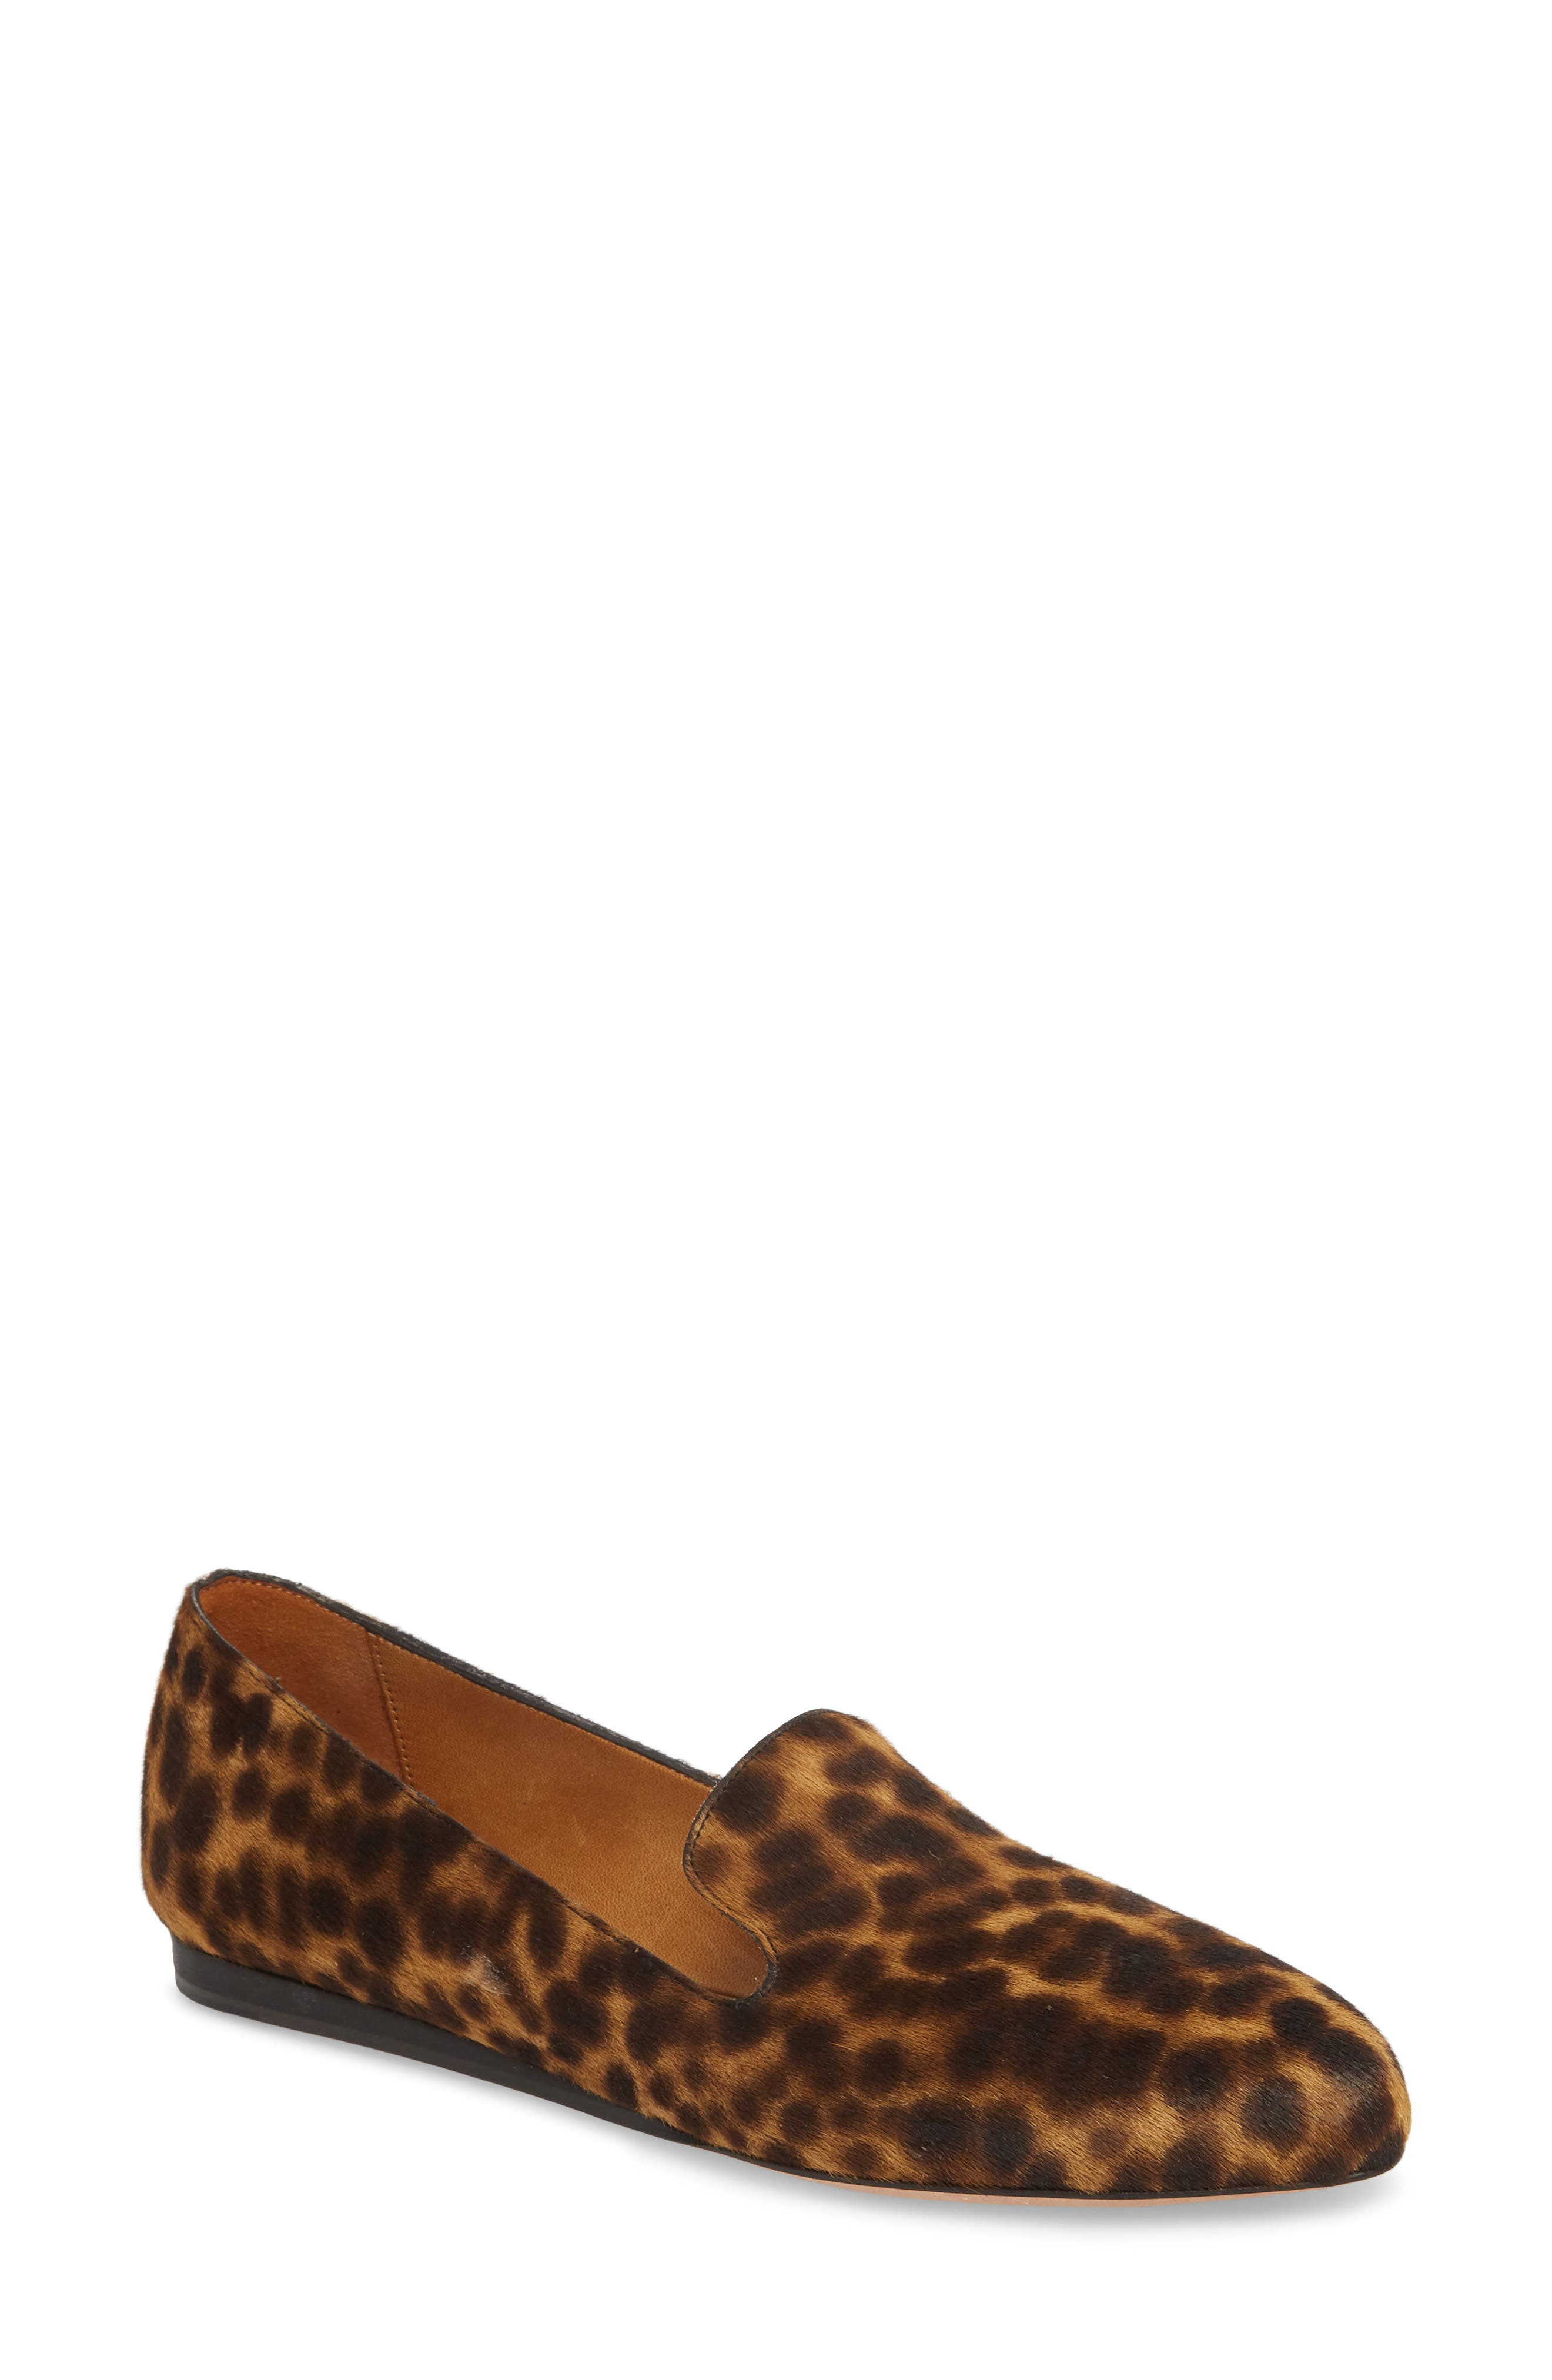 Griffin Genuine Calf Hair Loafer,                             Main thumbnail 1, color,                             LEOPARD